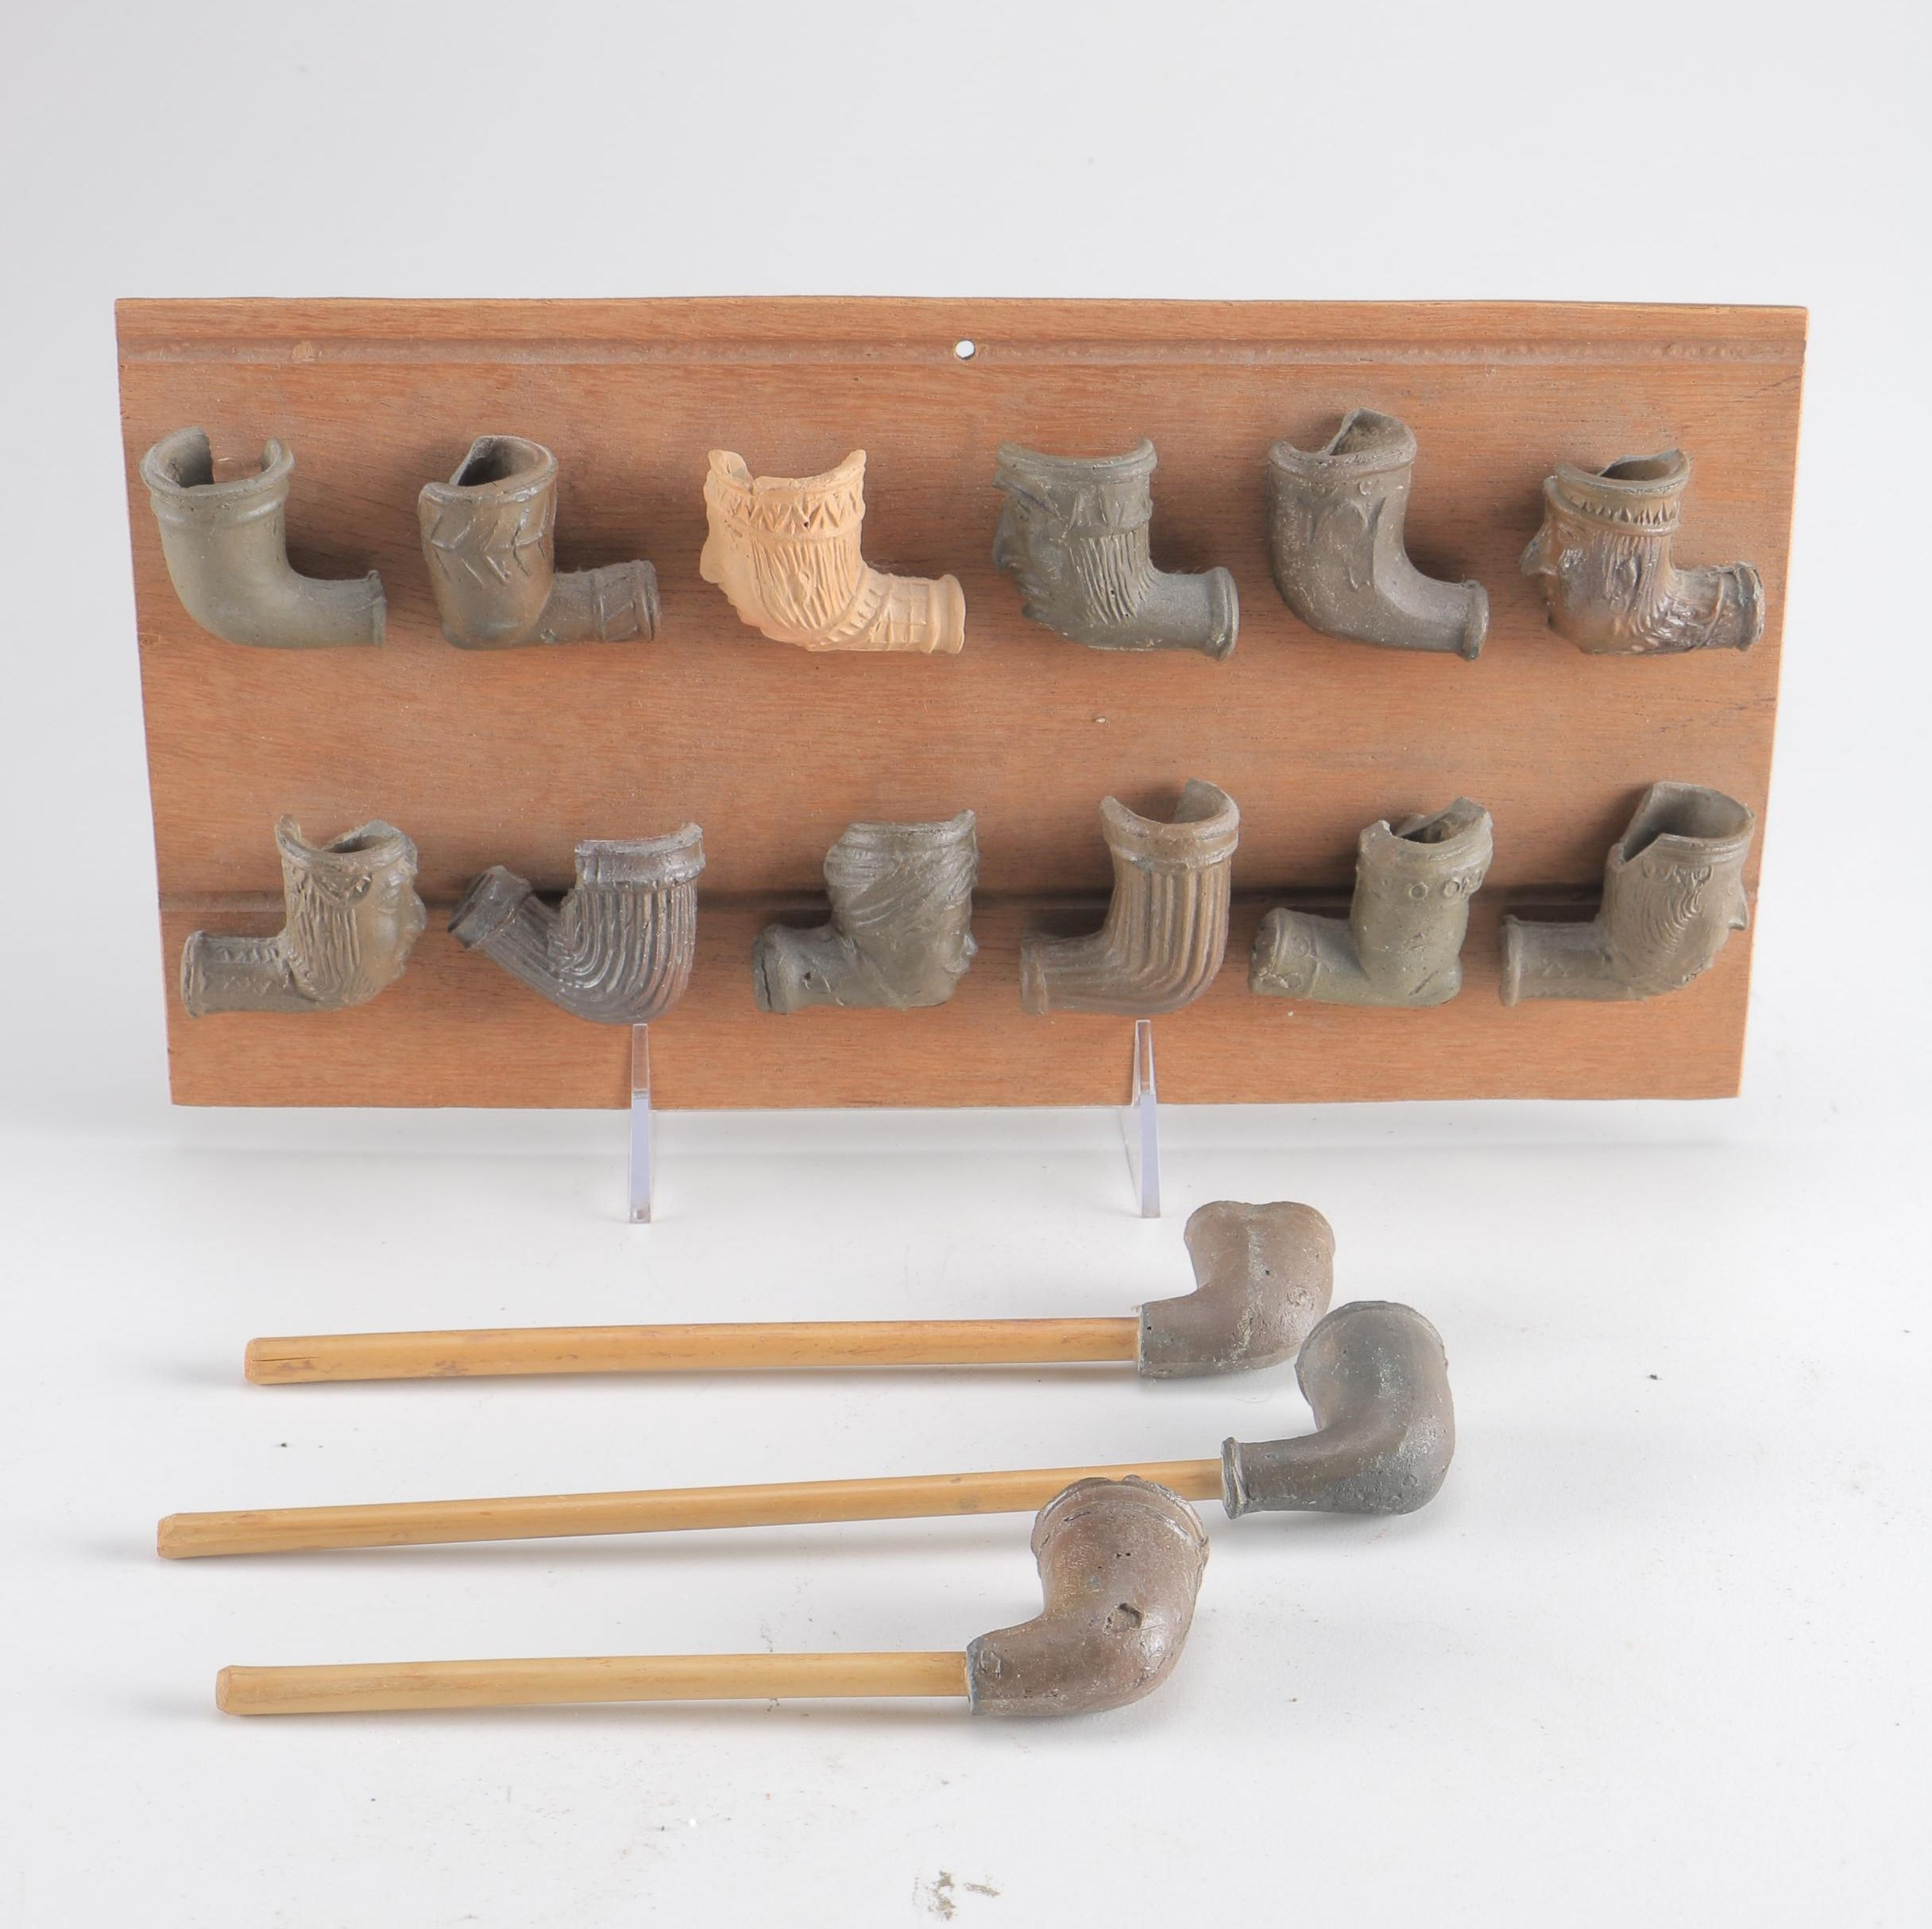 Clay Pipe Bowl Display With Pipes